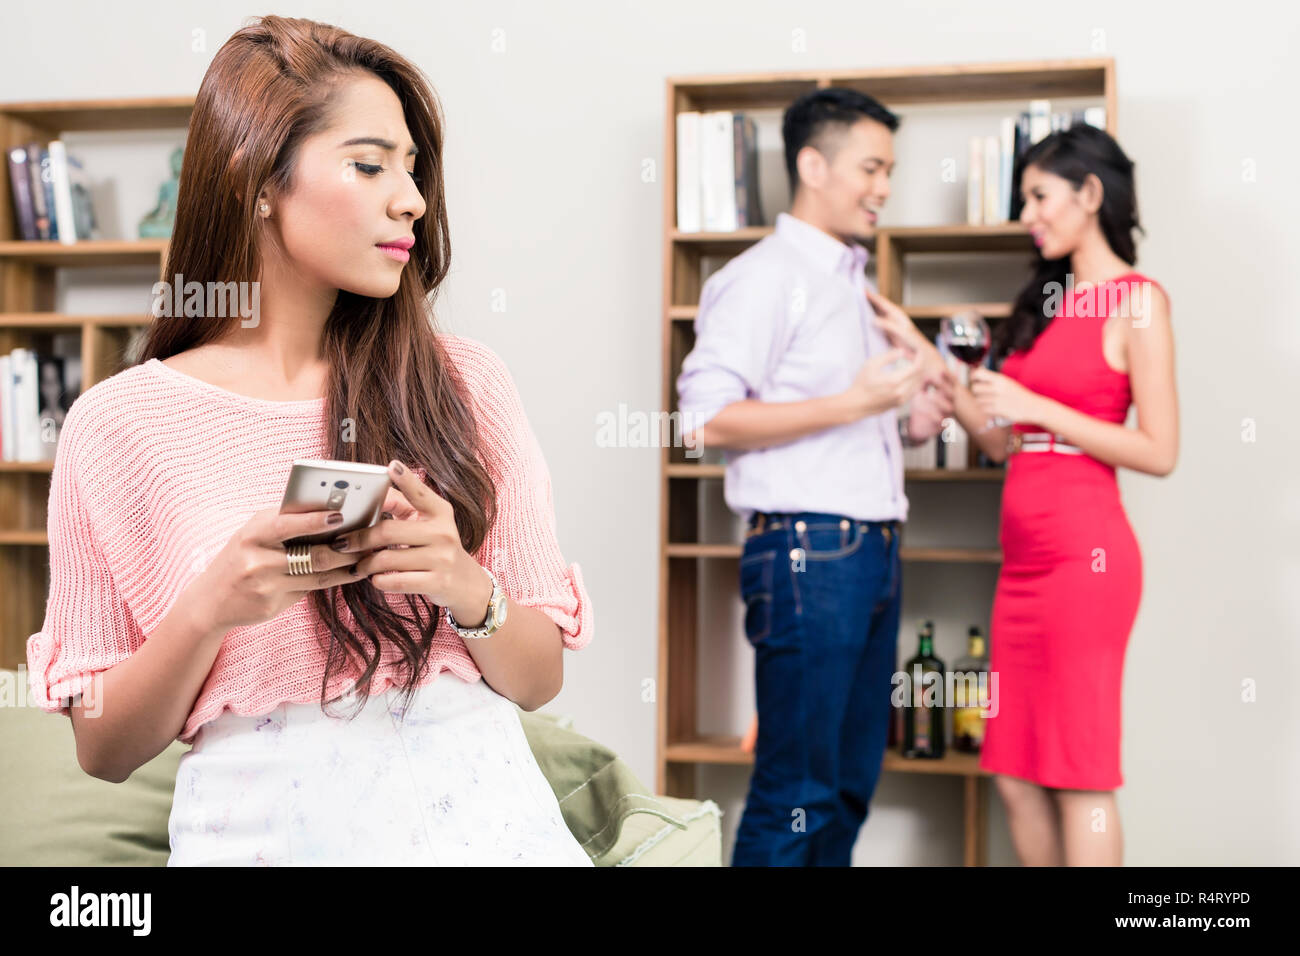 Woman looking at couple in the background - Stock Image